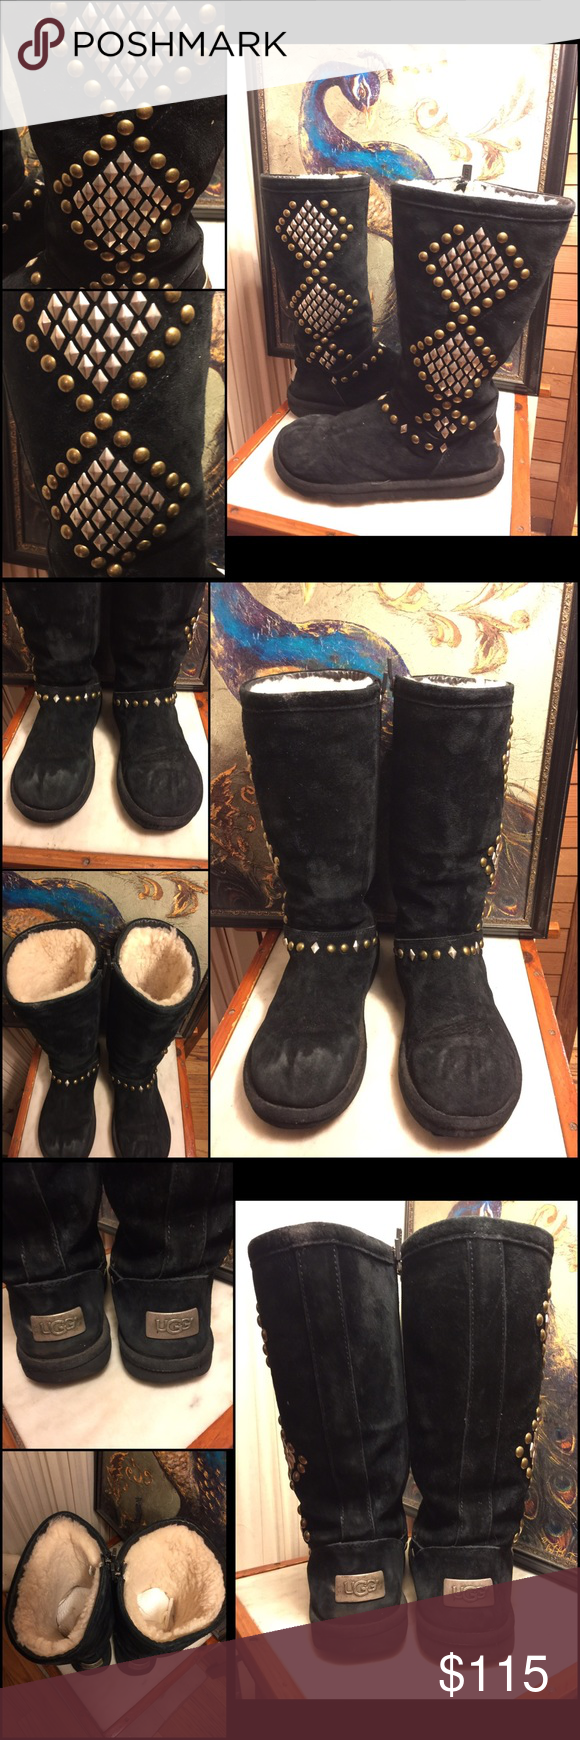 a38042c2aa3 SZ 6-UGG AVONDALE BLACK STUDDED SUEDE TALL BOOTS CHIC UGG AVONDALE ...